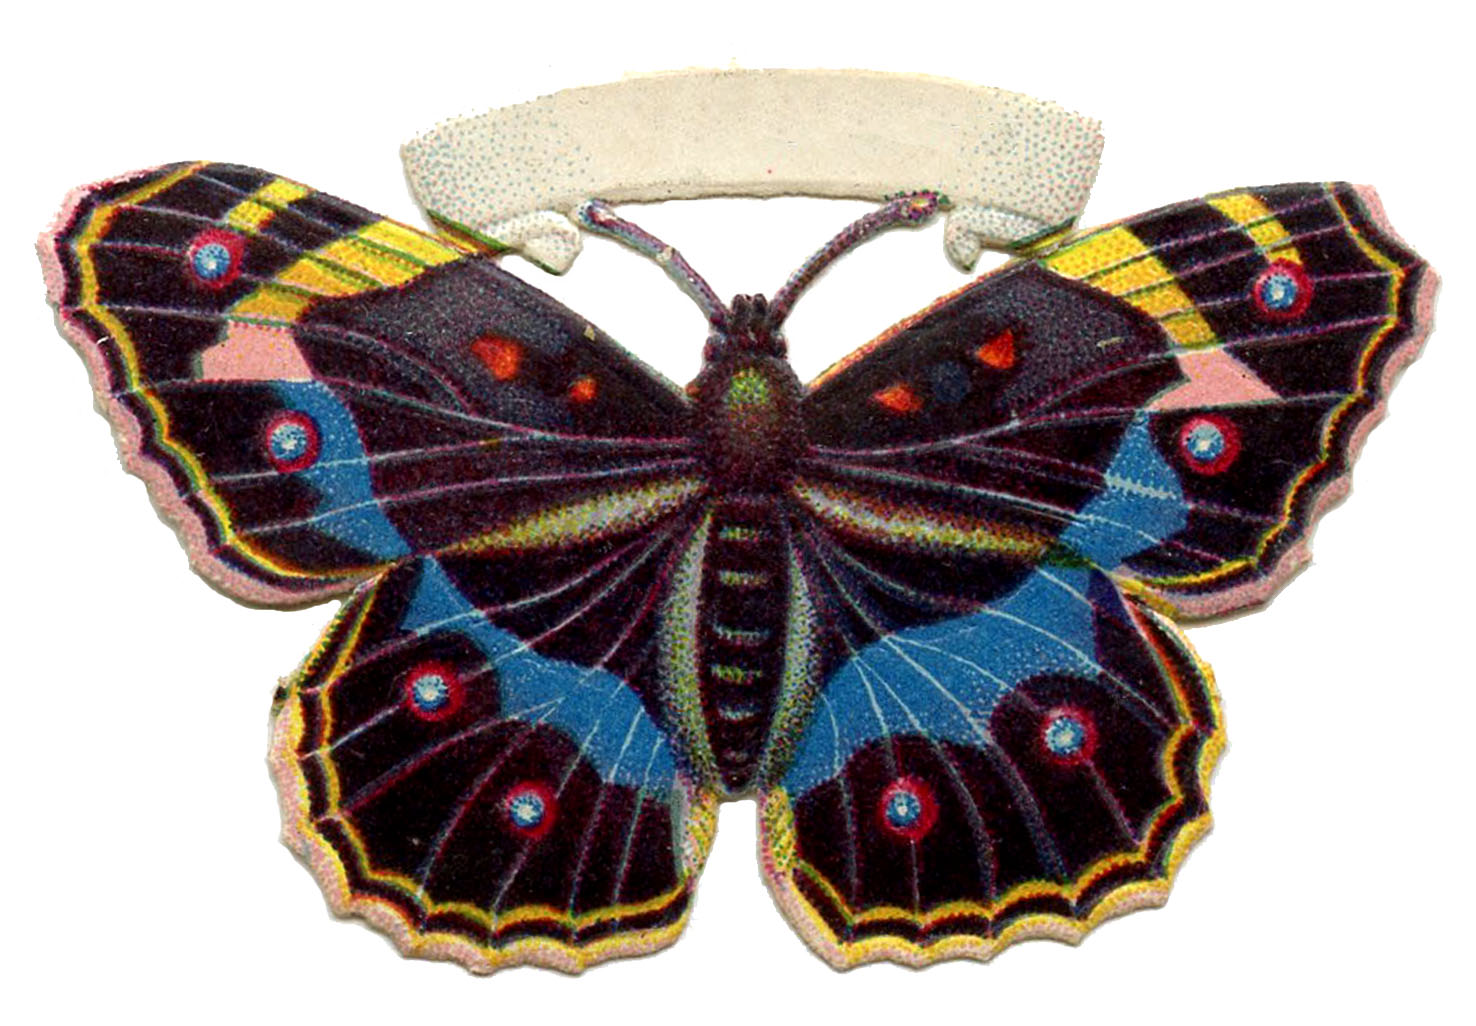 http://thegraphicsfairy.com/wp-content/uploads/2013/06/Butterfly-Vintage-Image-spotted-GraphicsFairy.jpg